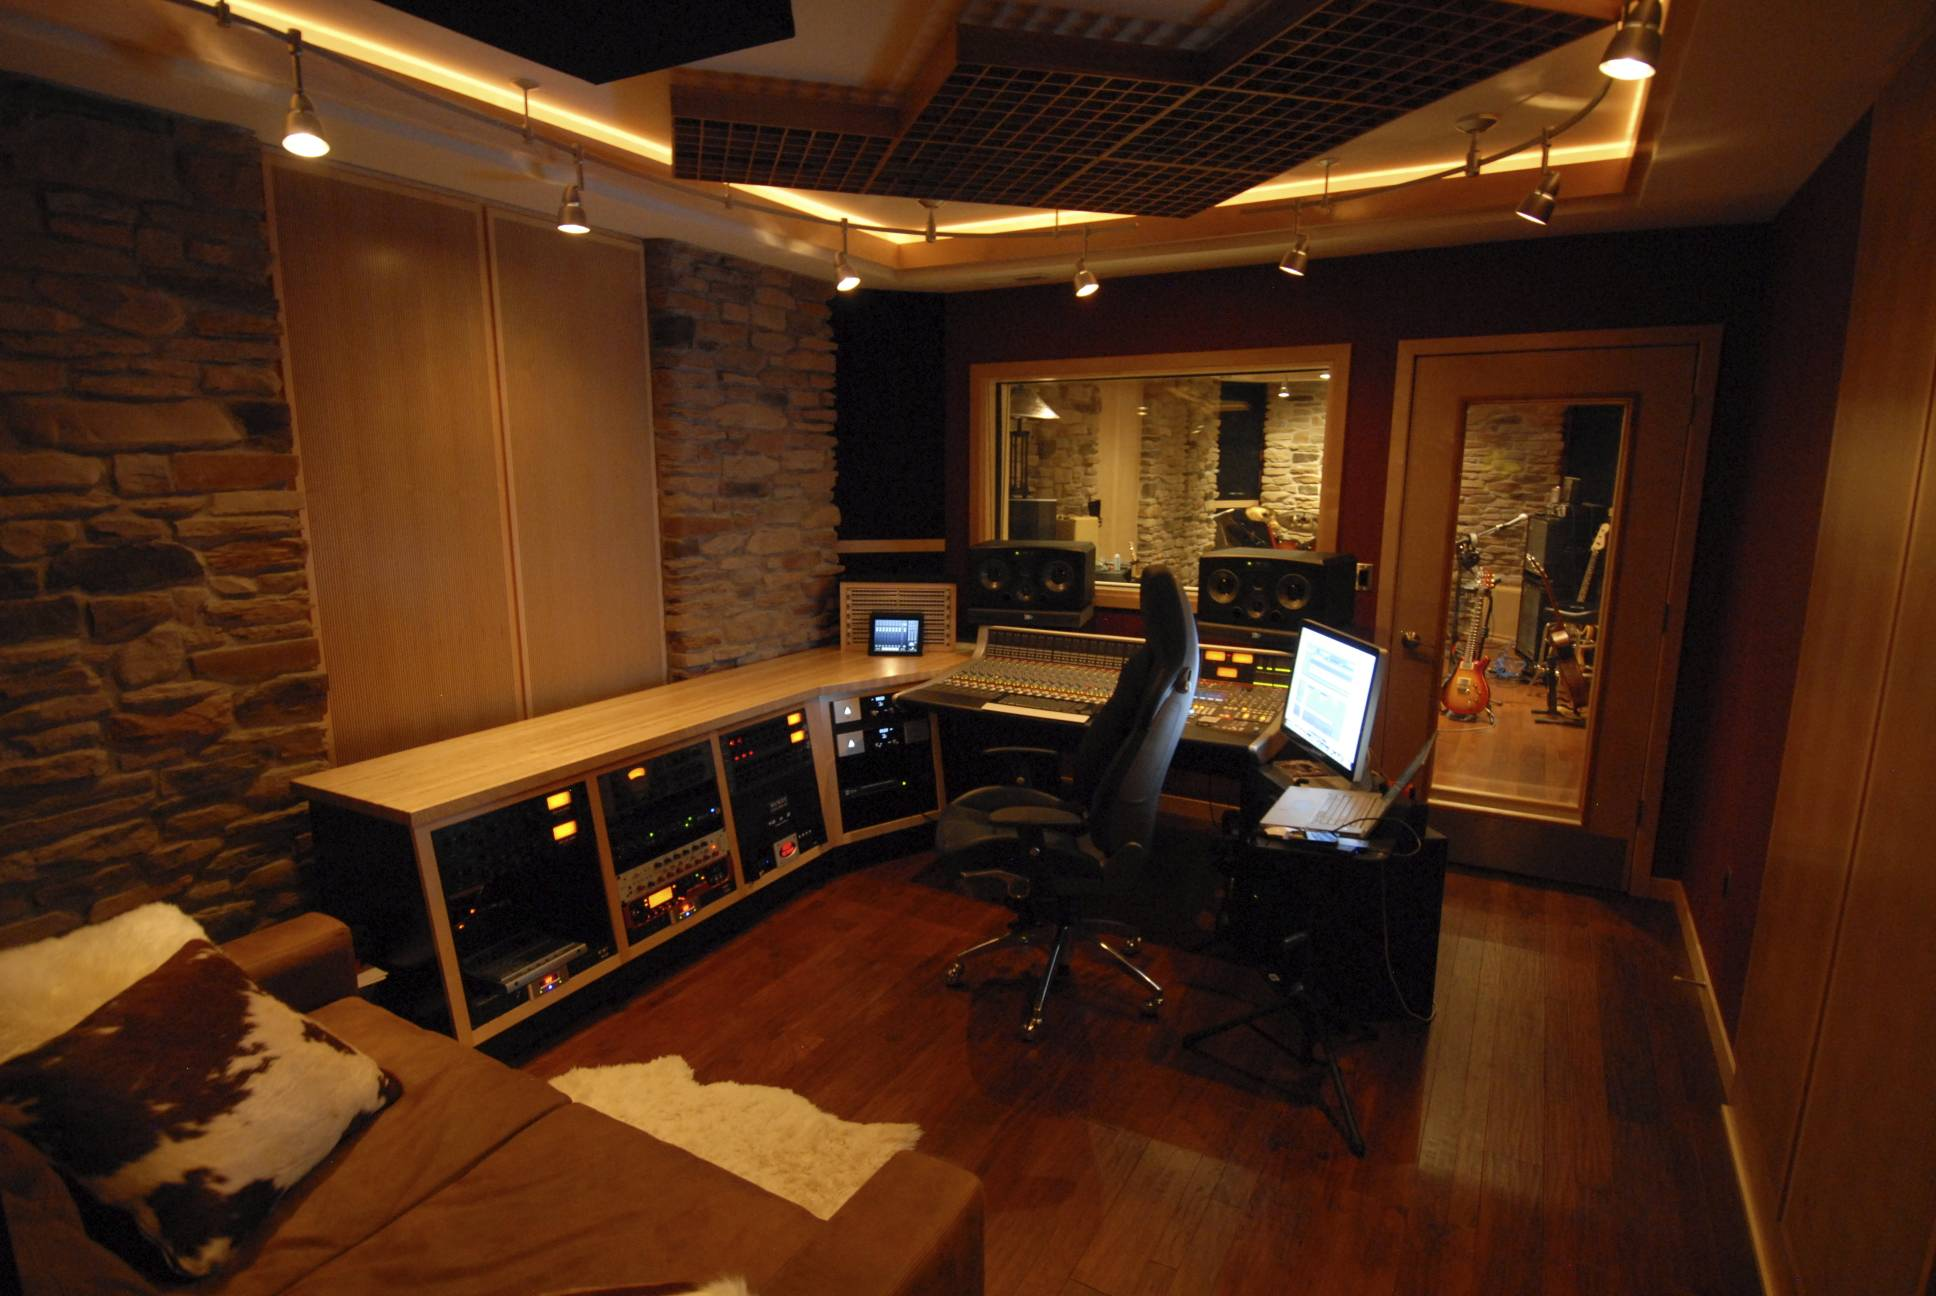 Grendel 39 s lair studio 7 basement project page 5 for Best flooring for recording studio